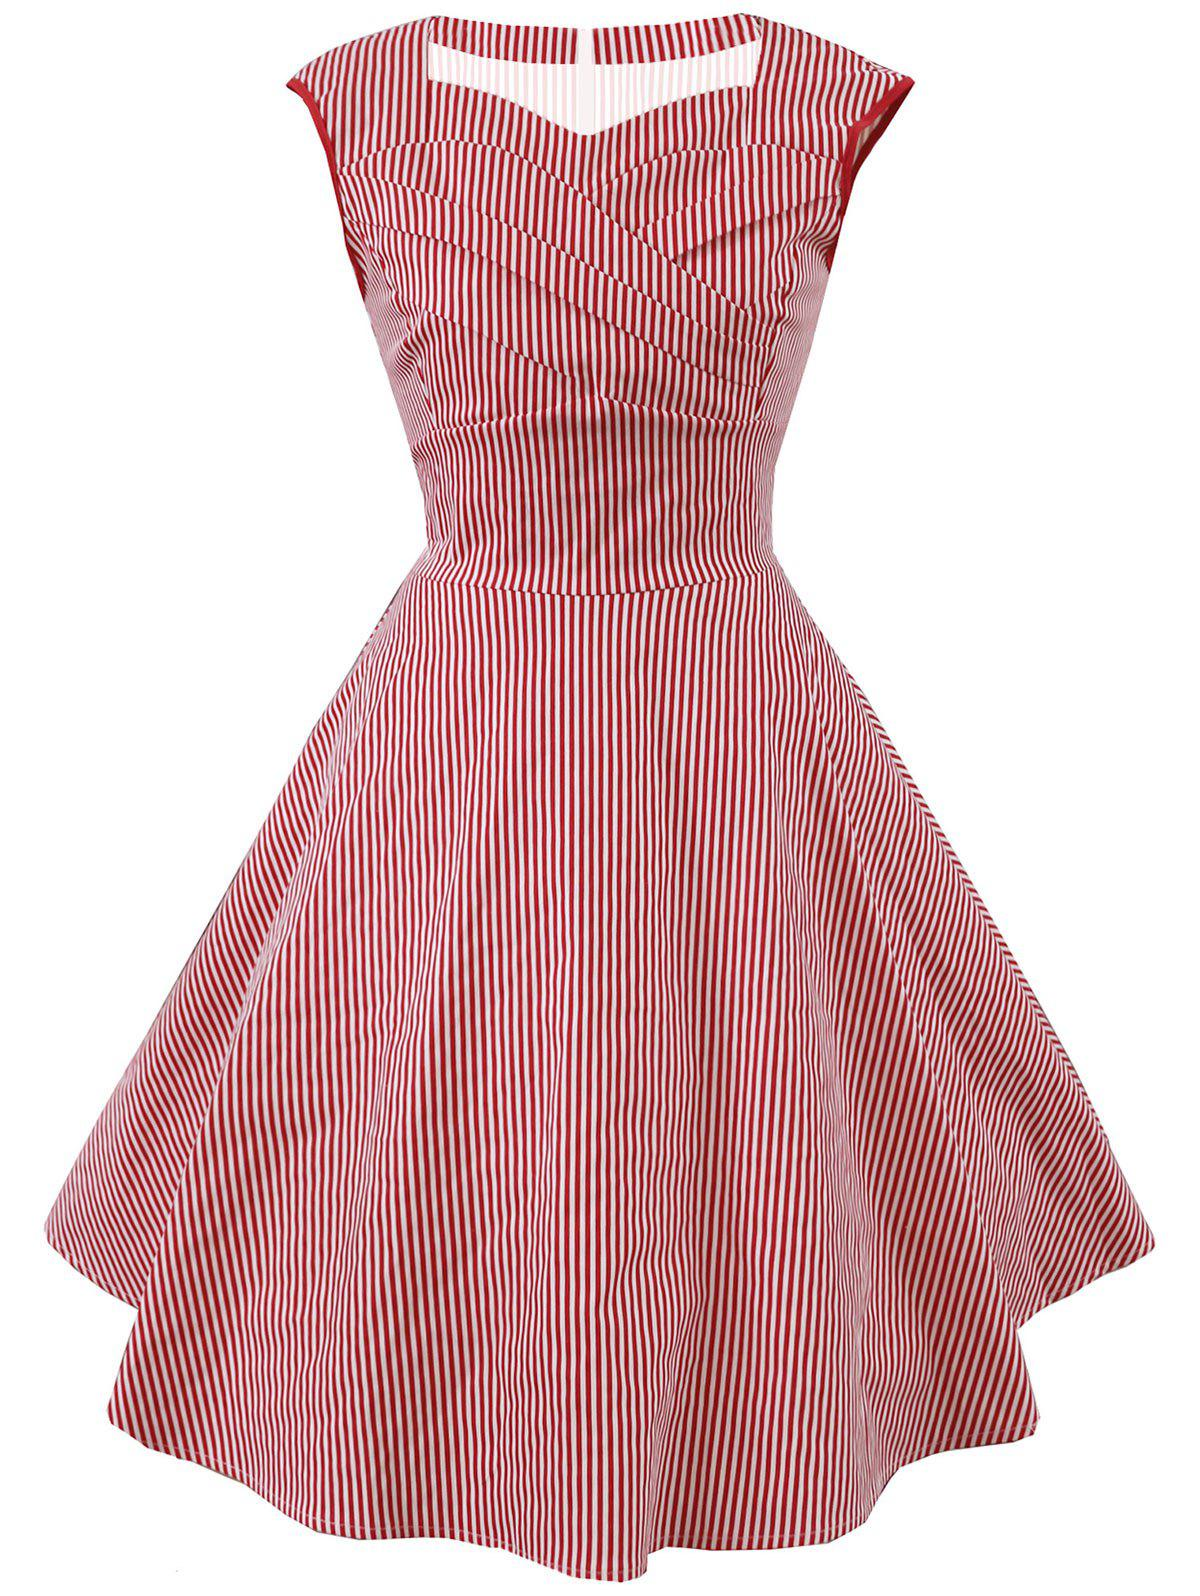 Discount Striped Cap Sleeve Party Dress